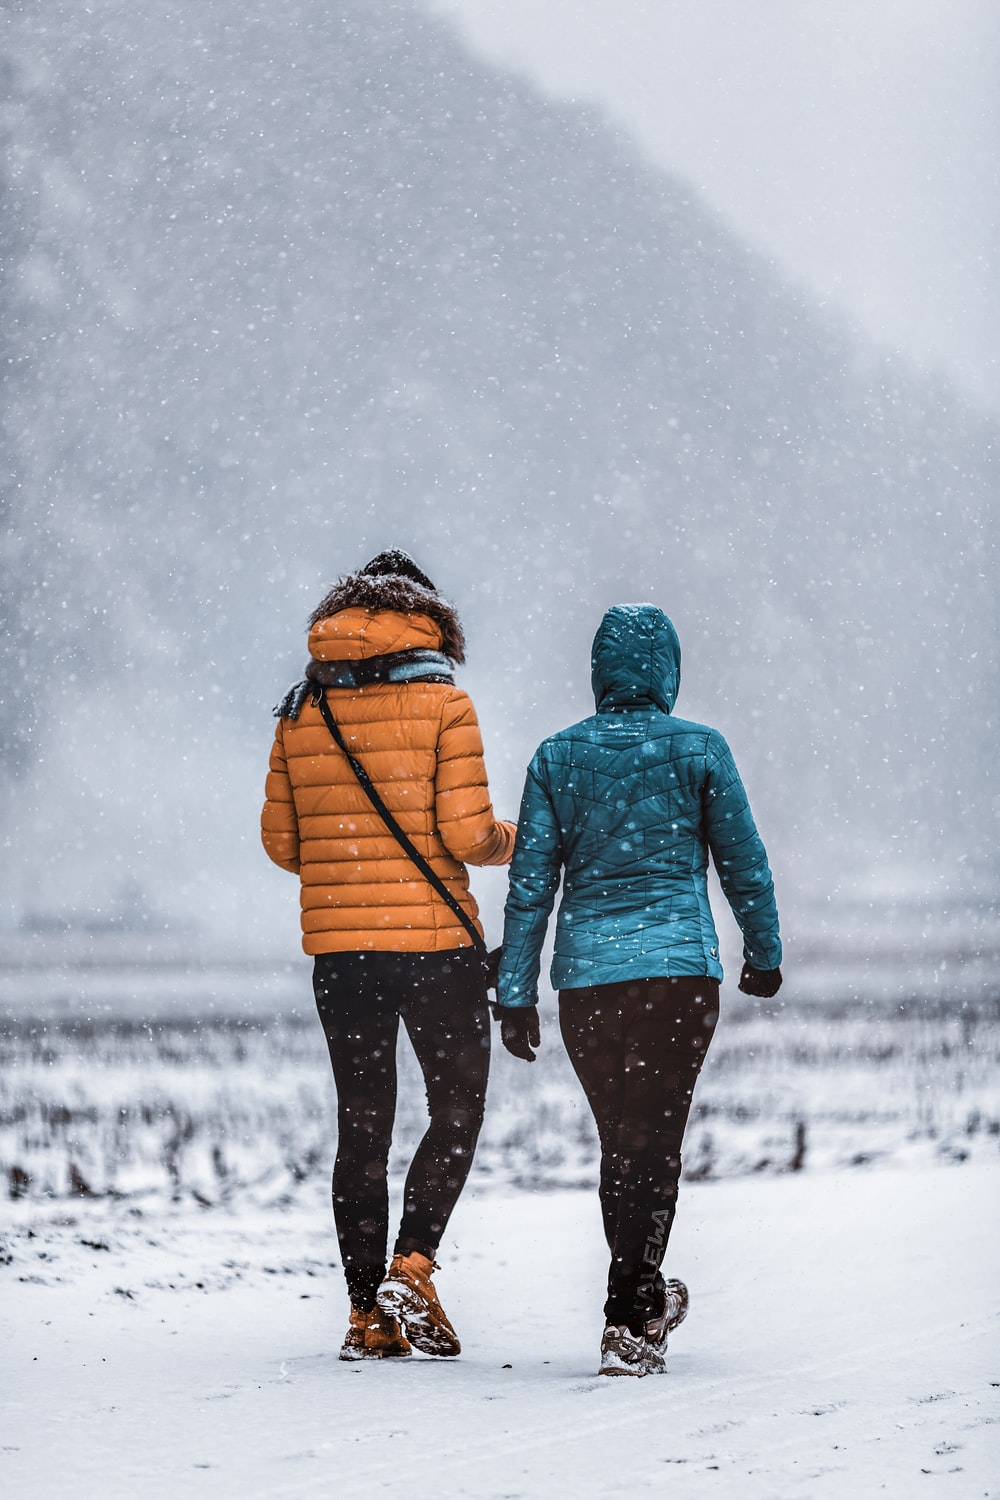 man and woman walking on snow covered ground